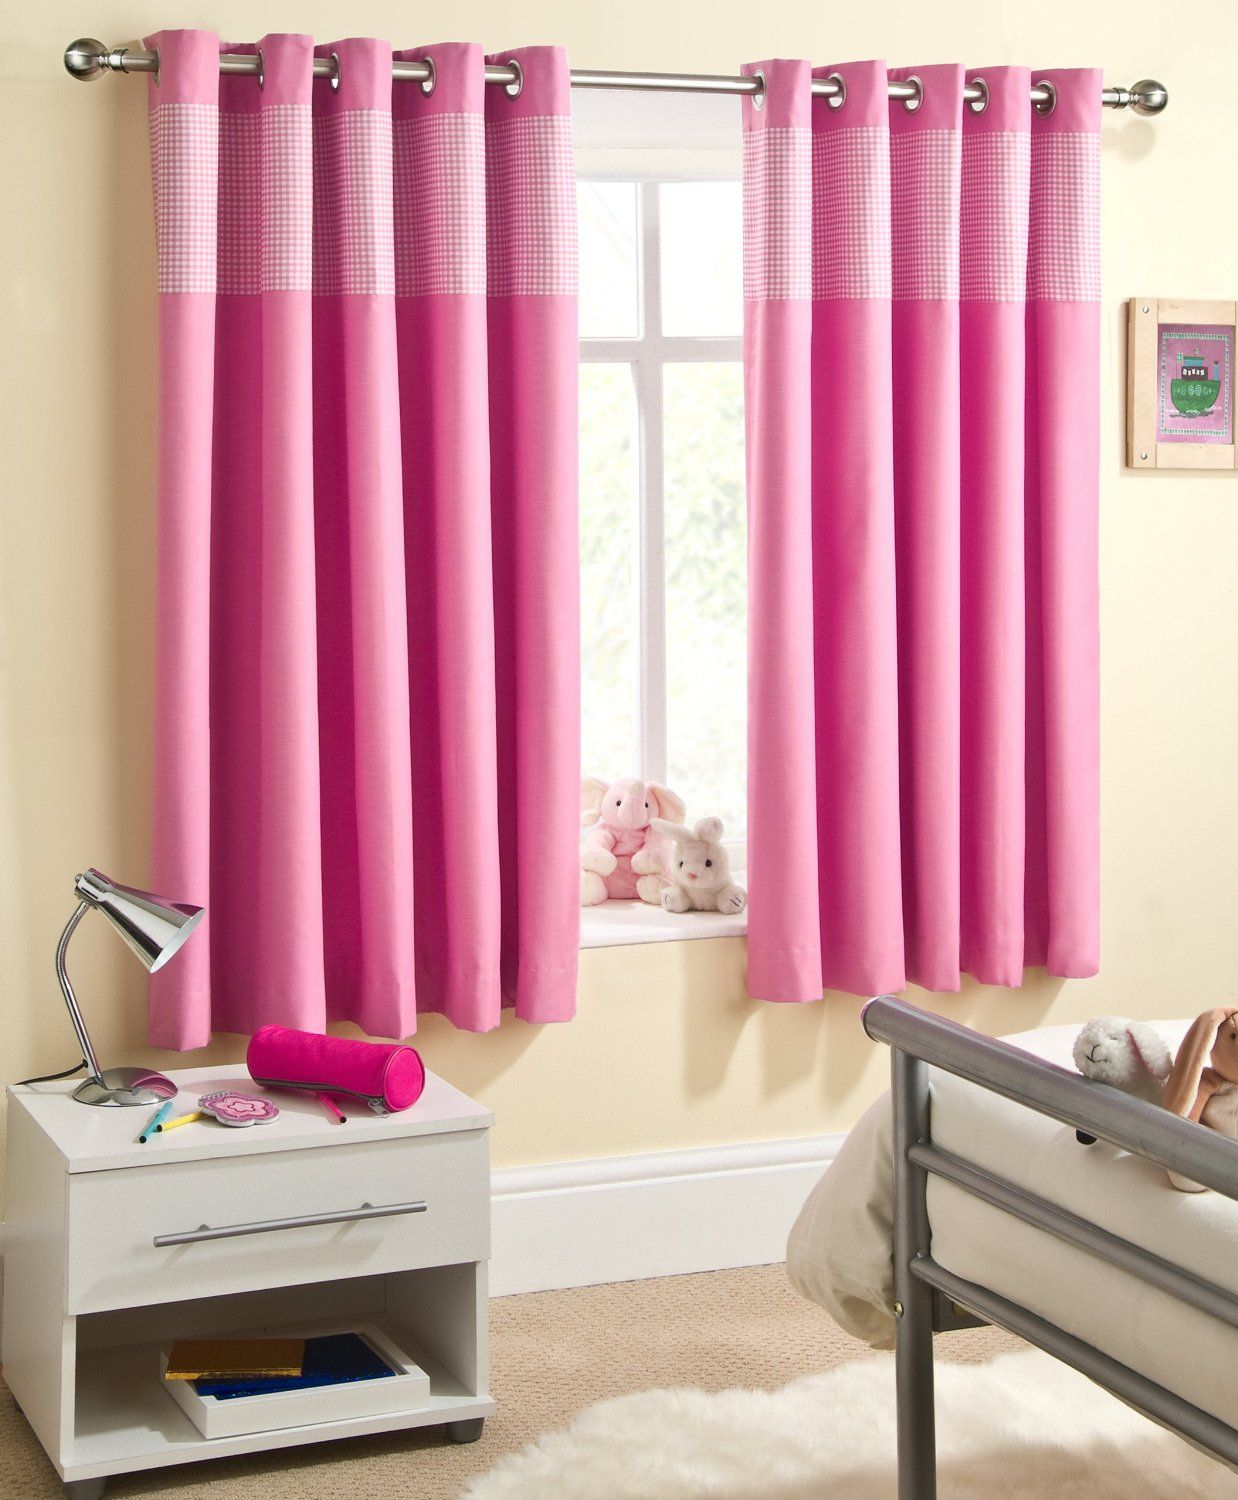 Blackout Curtains 90 X 54 Pink Blackout Curtains 66 X 72 Curtain Menzilperde Net